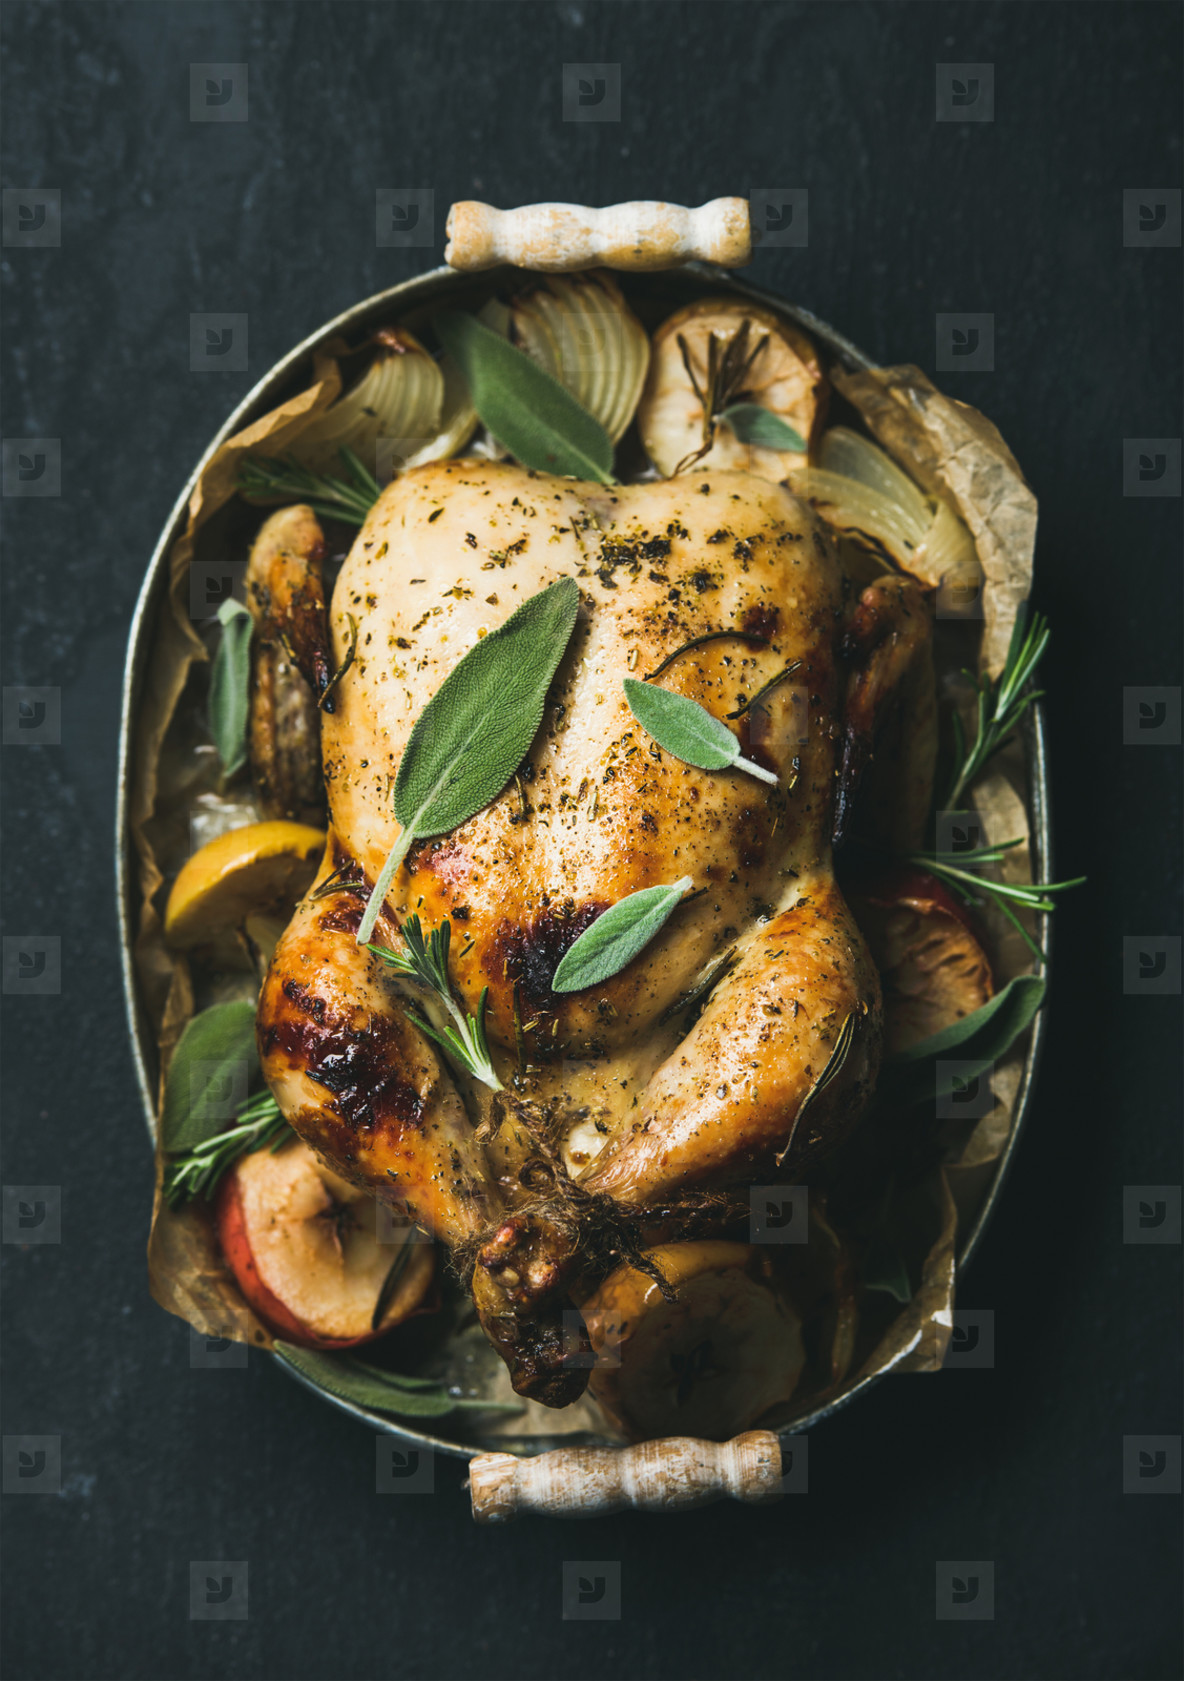 Oven roasted whole chicken with fresh sage leaves and apples